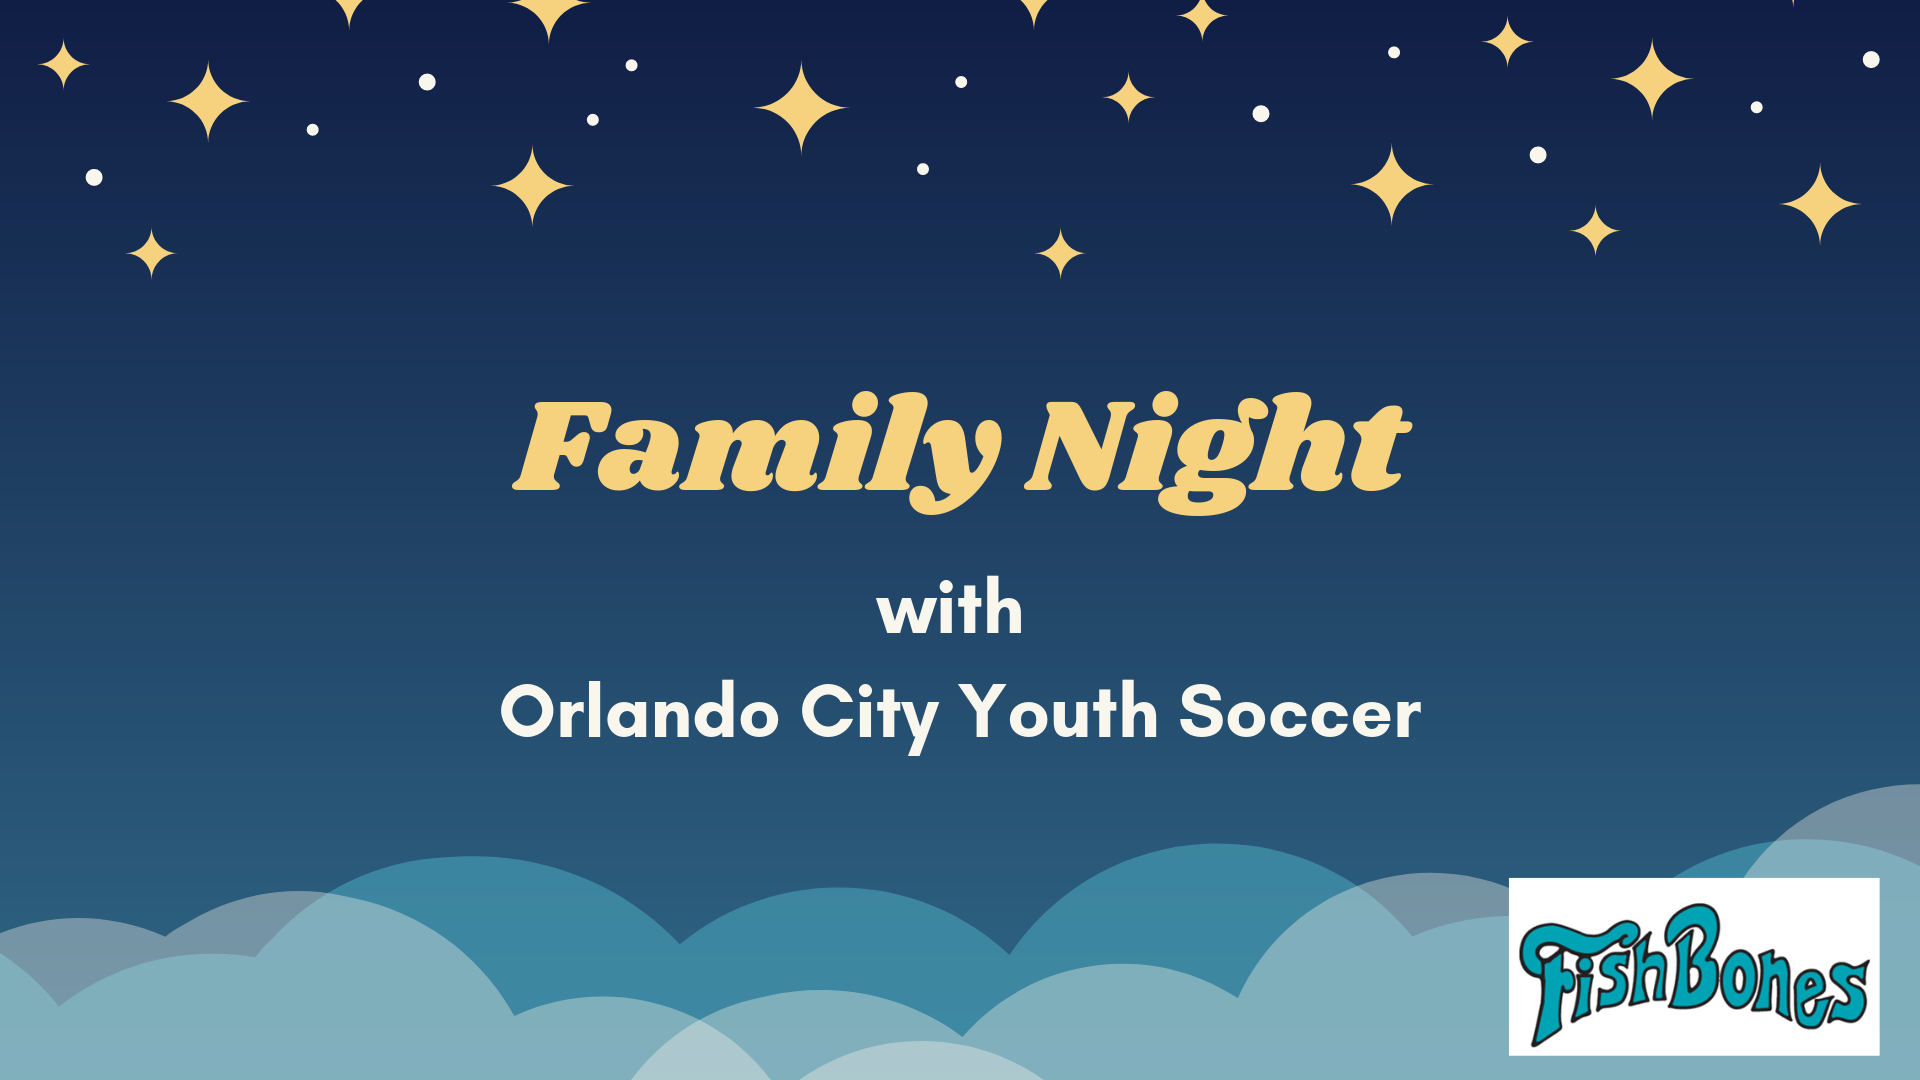 Family Night with Orlando City Youth Soccer